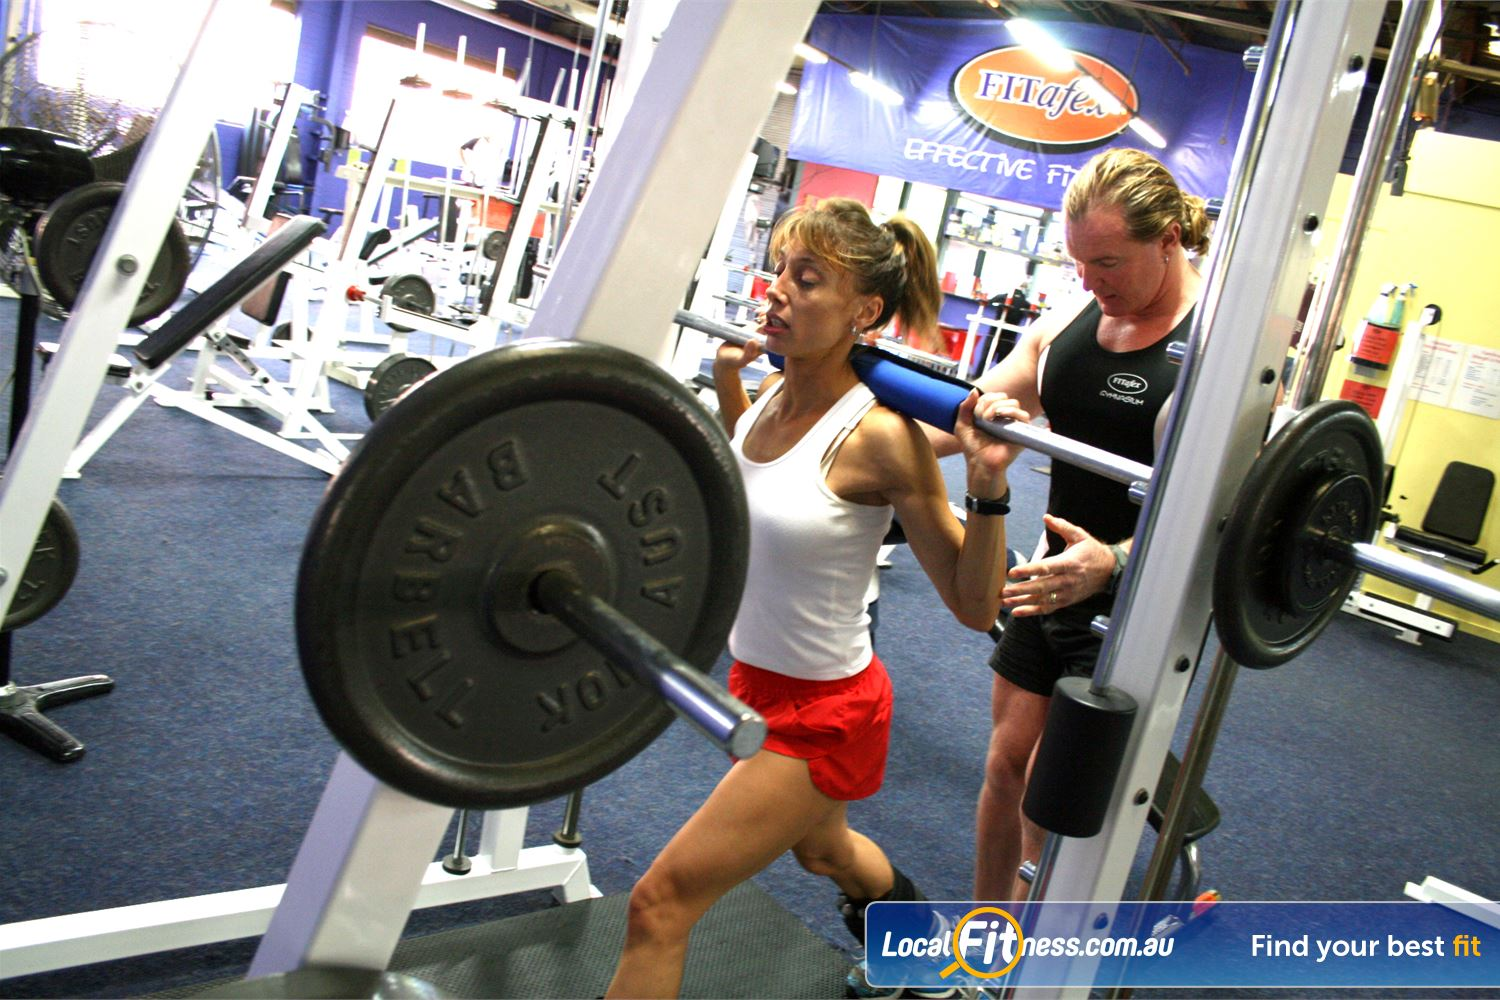 FITafex Gymnasium Essendon Our Essendon gym staff can tailor a strength program to suit you.